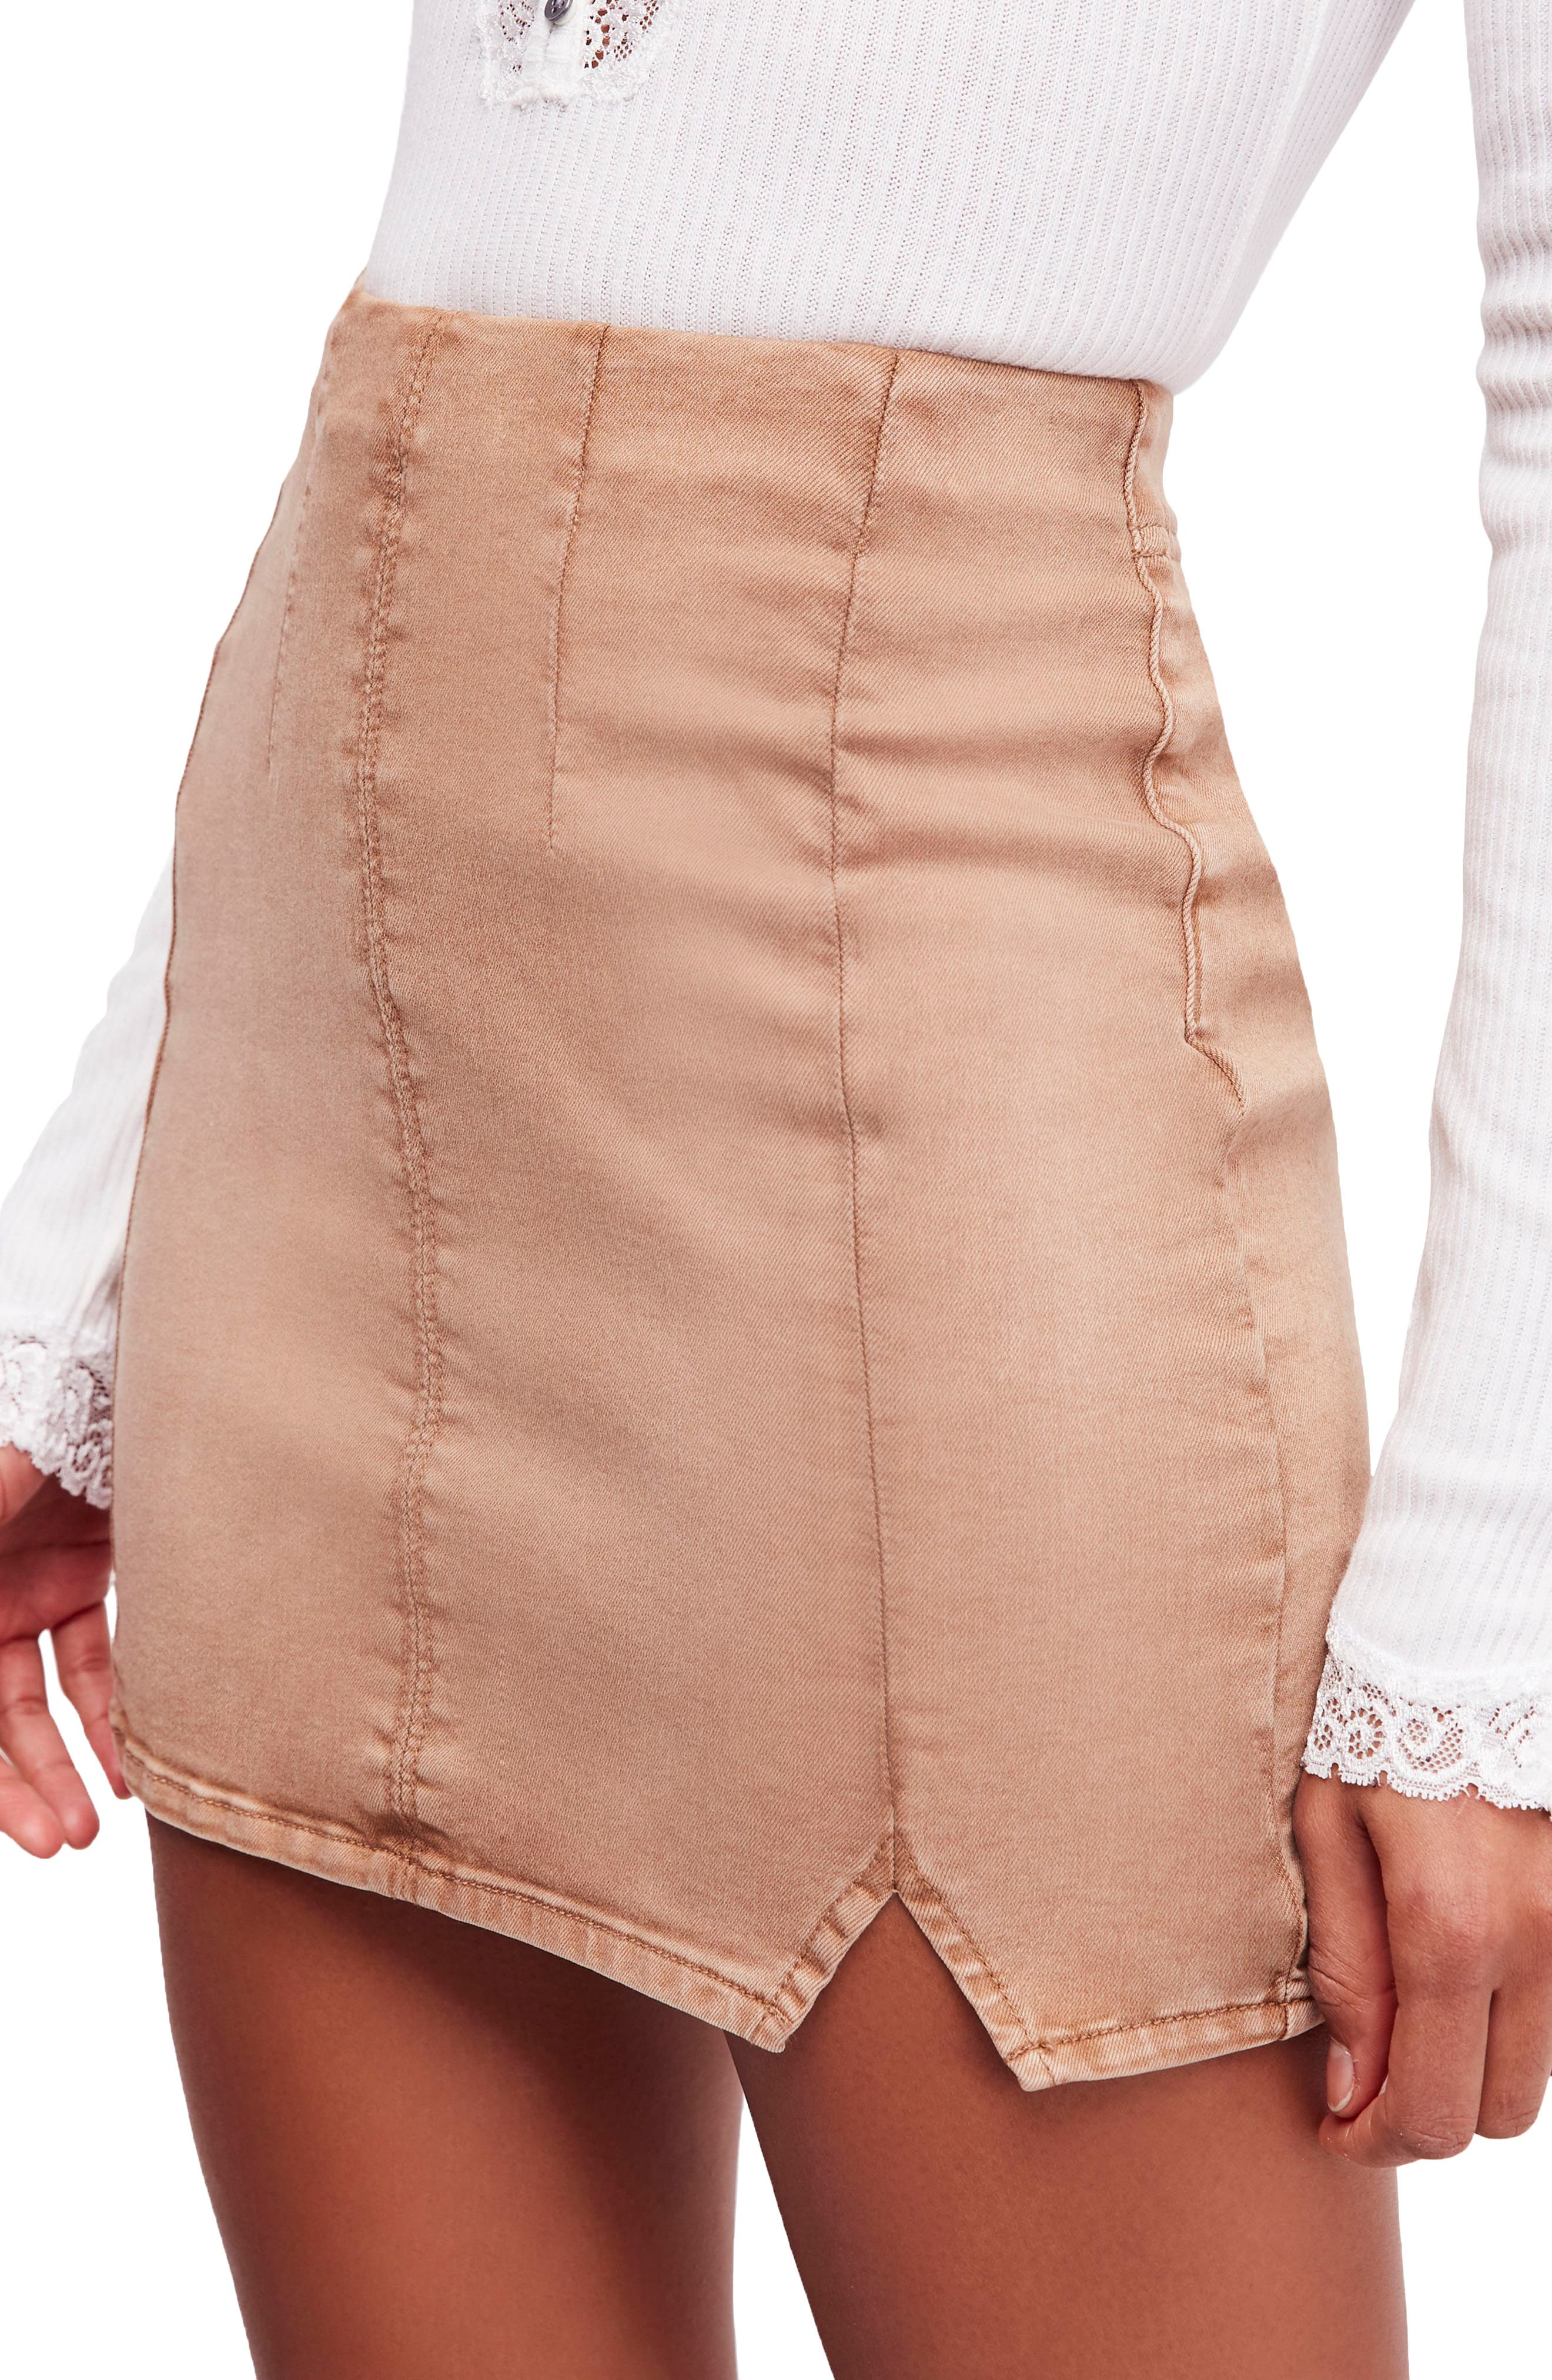 Femme Fatale Pull On Skirt,                             Main thumbnail 1, color,                             Khaki